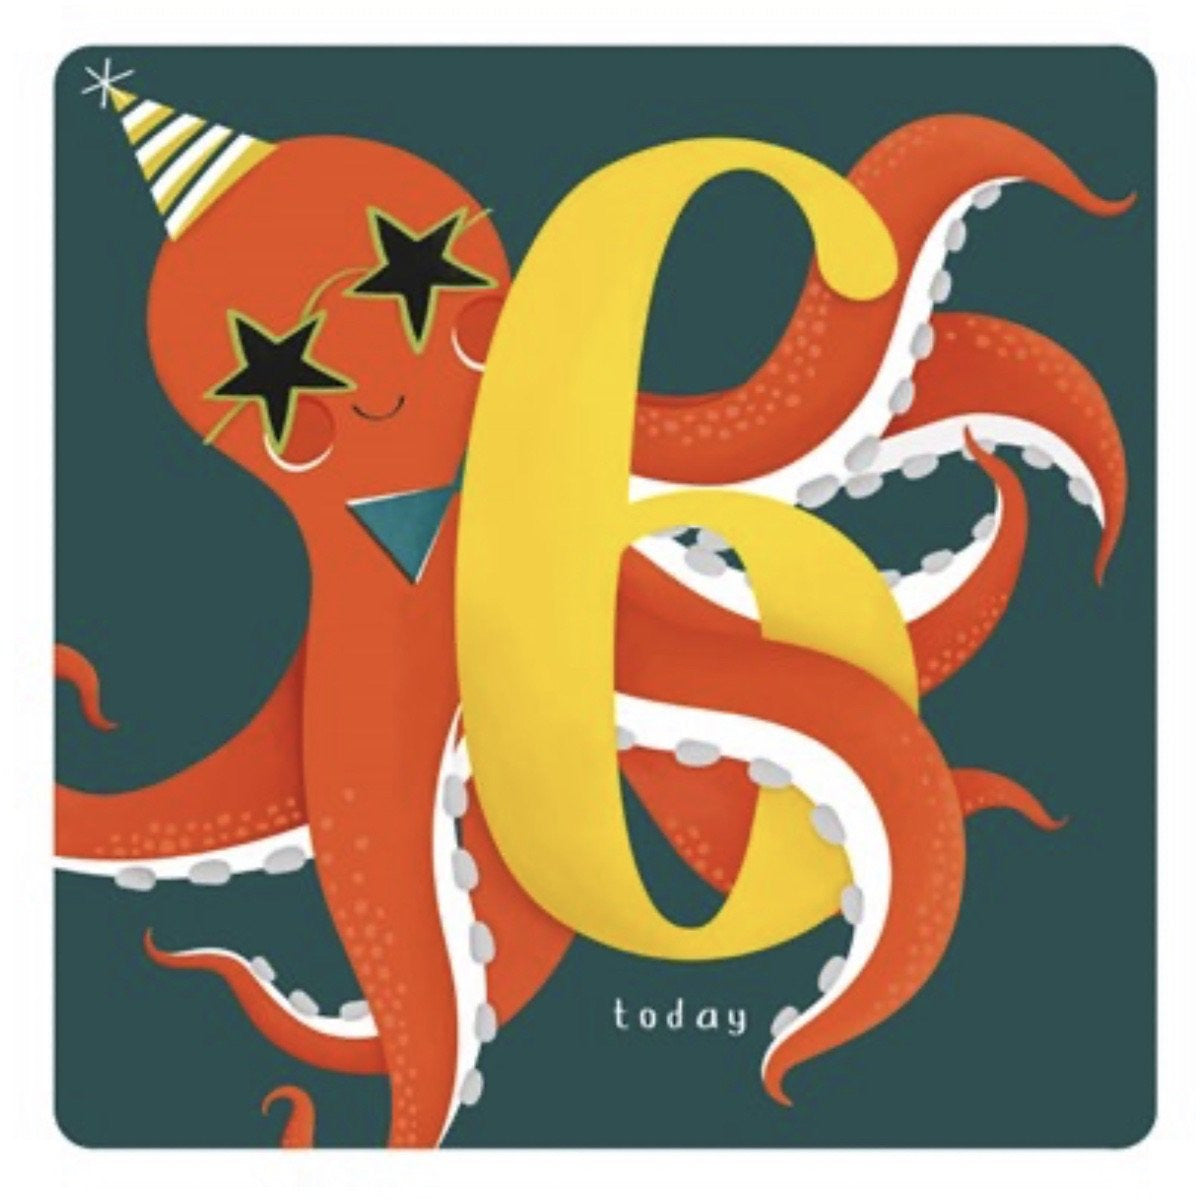 The Art File Sixth Birthday Card -  Party Octopus (4706188165252)